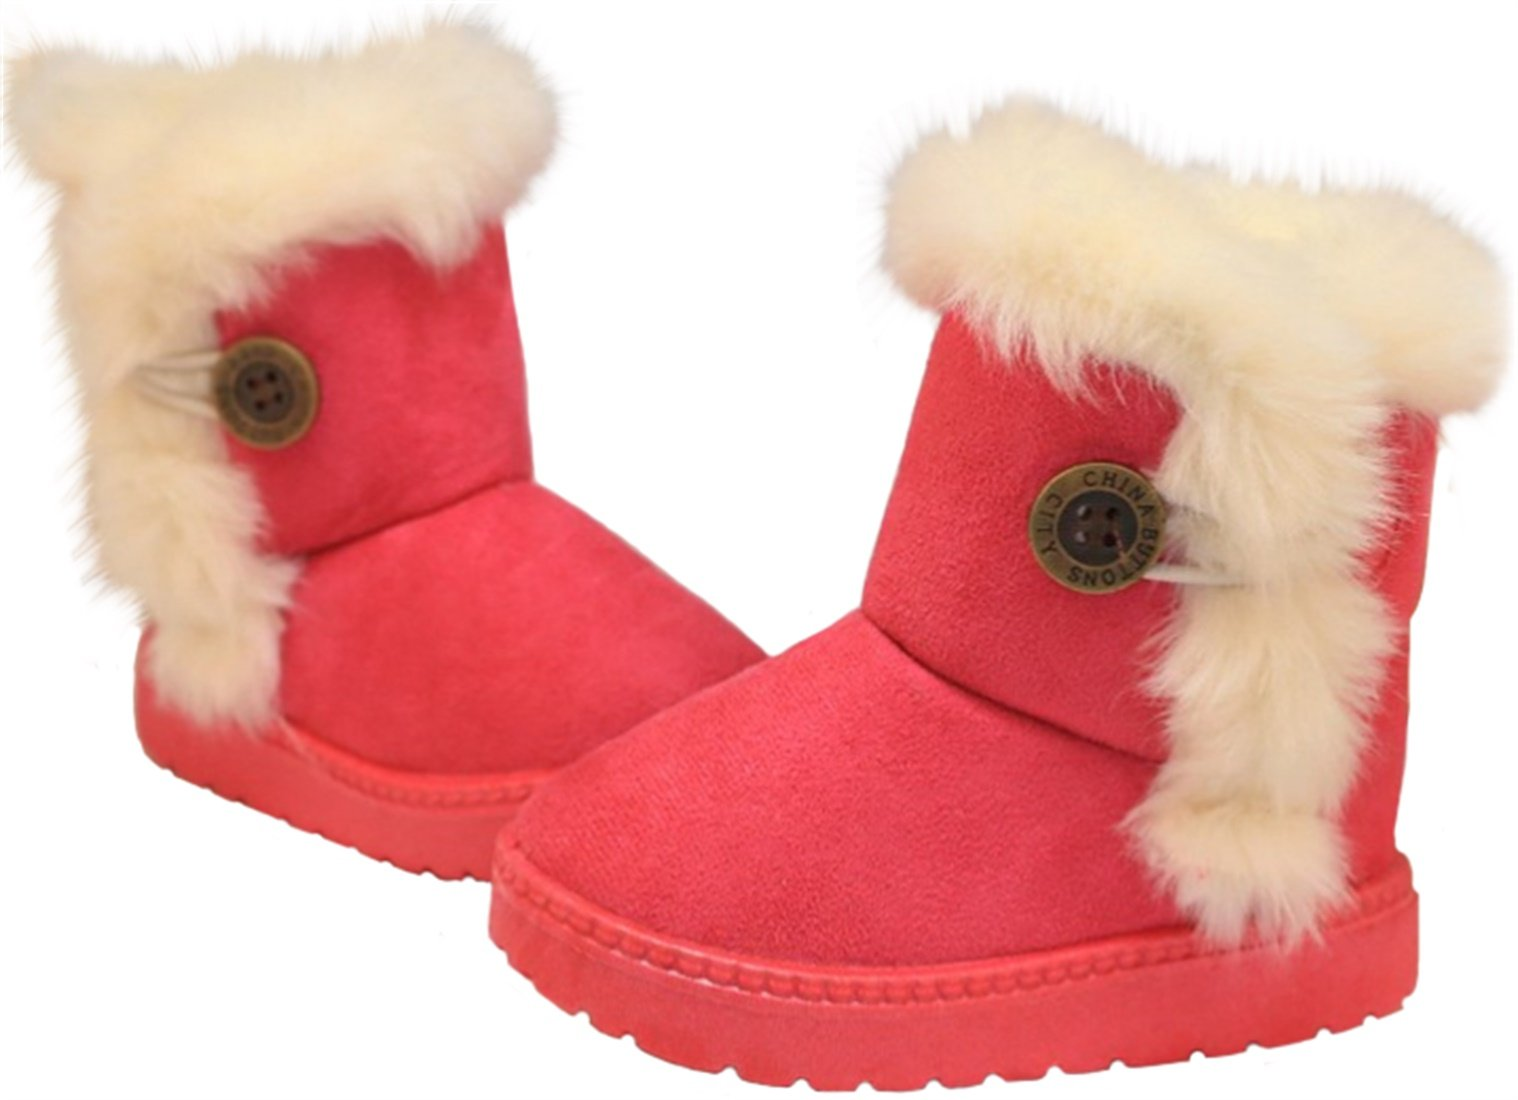 PPXID Baby's Girl's Boy's Lovely Flat Button Winter Warm Snow Boots(Toddler/Little Kid)-Rose Red 4 US Size